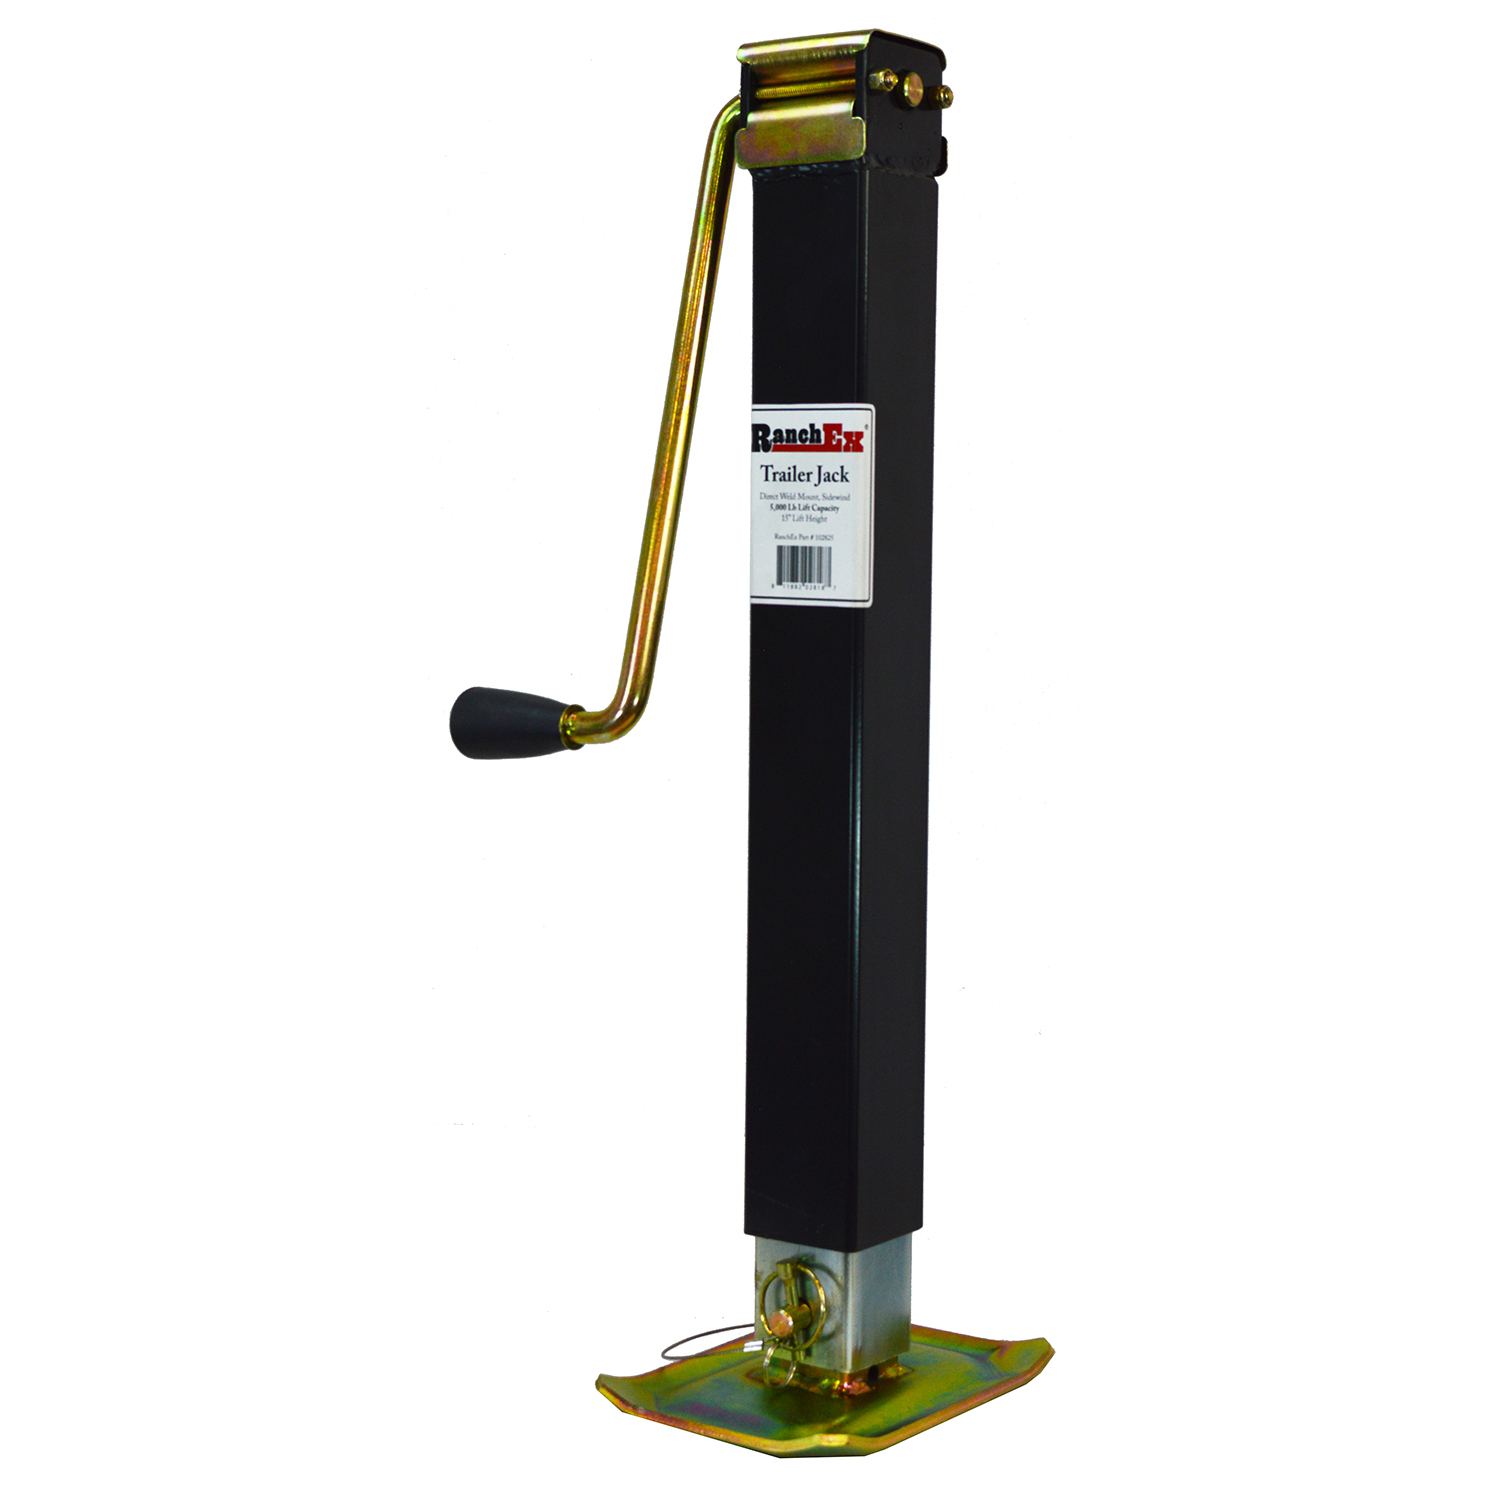 "RanchEx Square Direct Weld Side wind Trailer Jack, 5,000 lb. Lift Capacity, 15"" Lift Height by RanchEx"